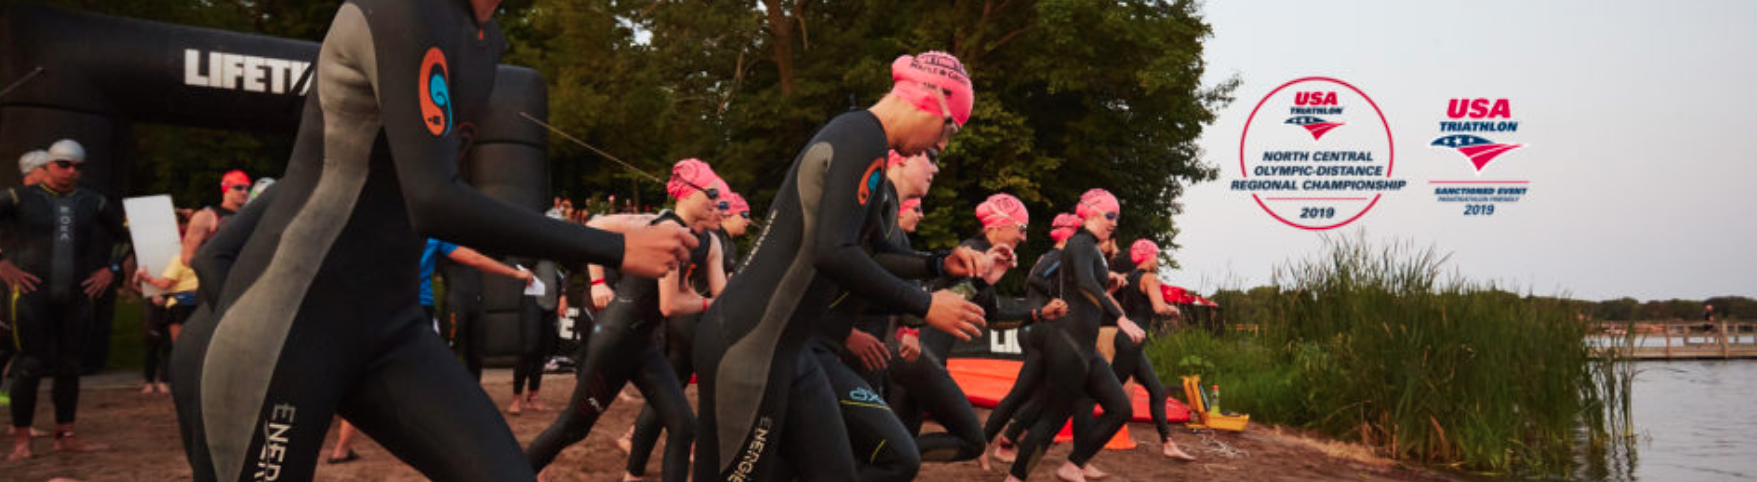 Super Sprint Triathlons in United States 2019 | Let's Do This